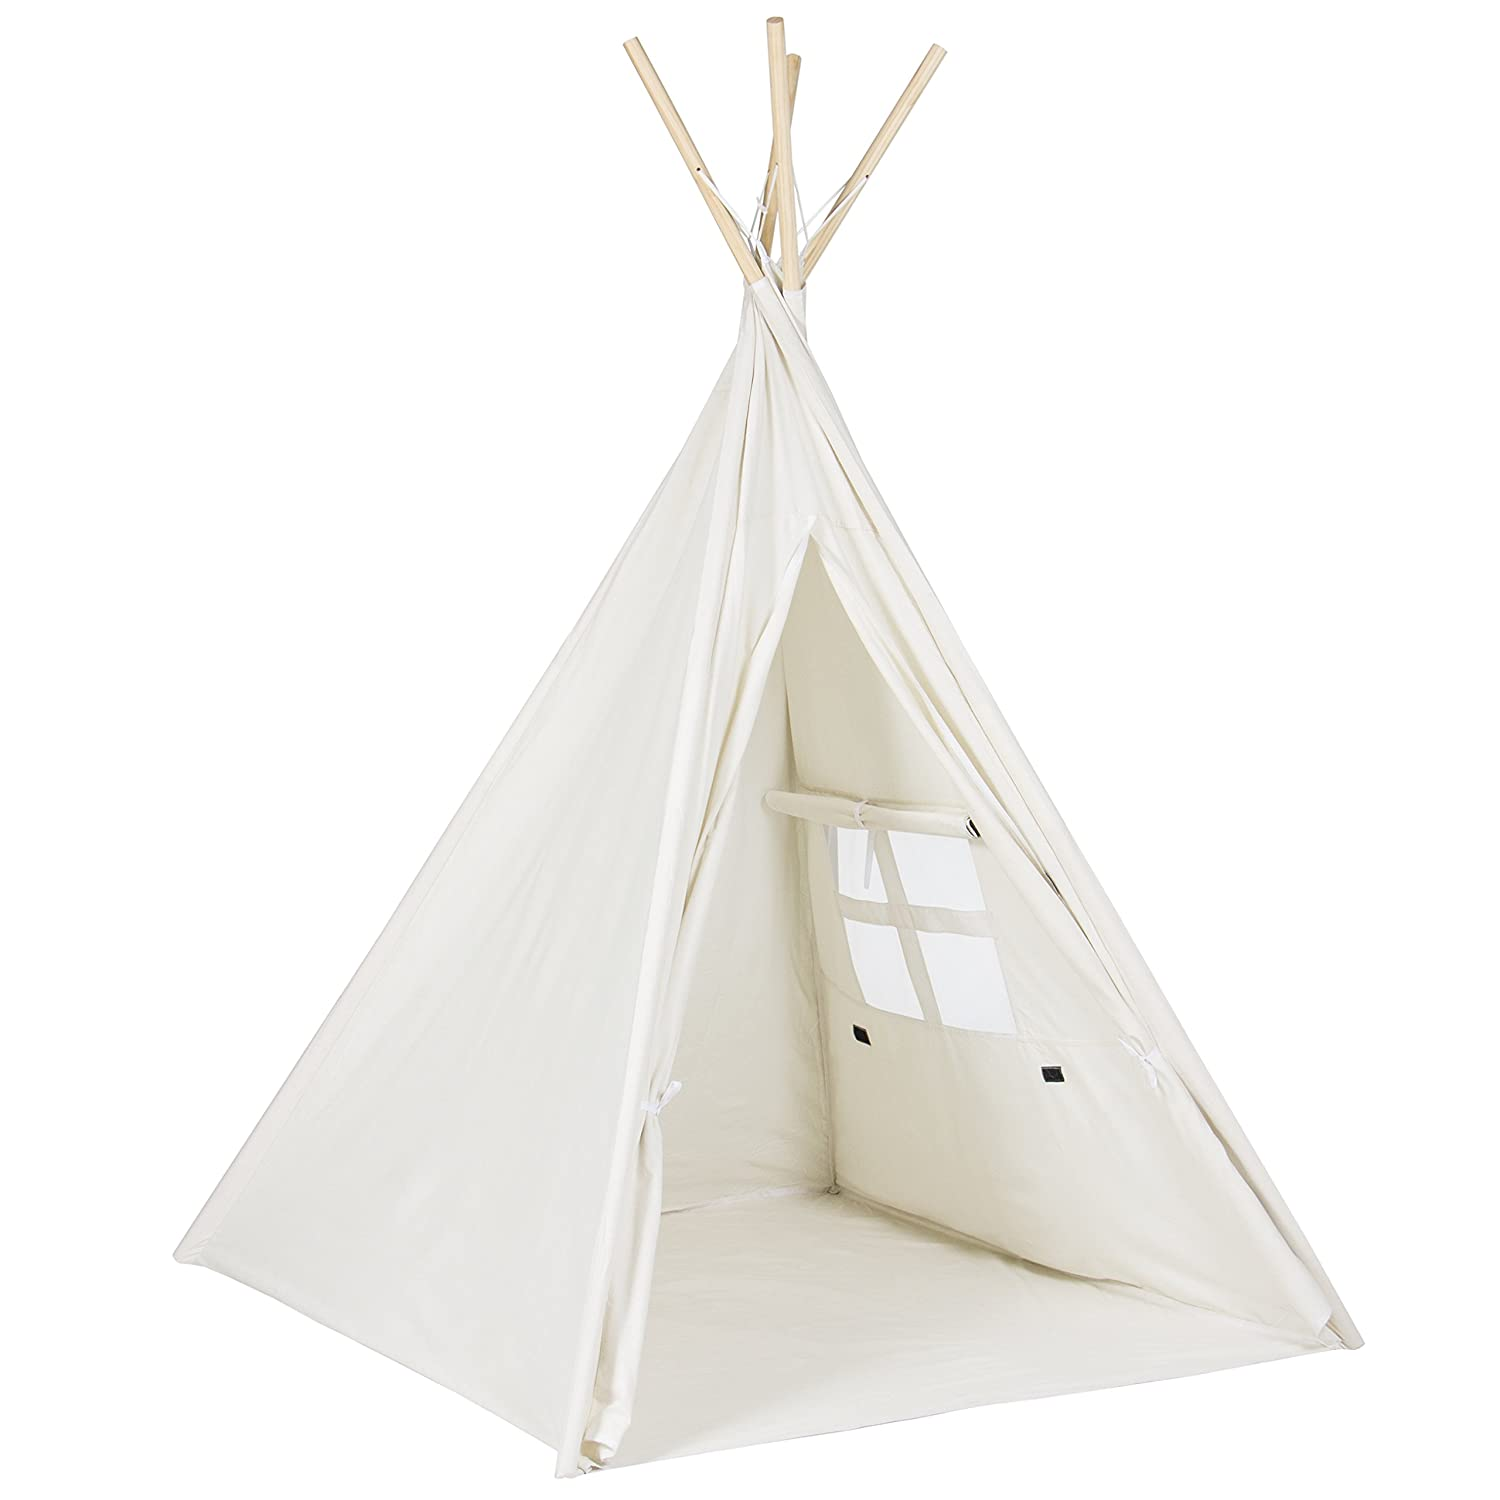 Buy Best Choice Products 6 White Teepee Tent Kids Indian Playhouse